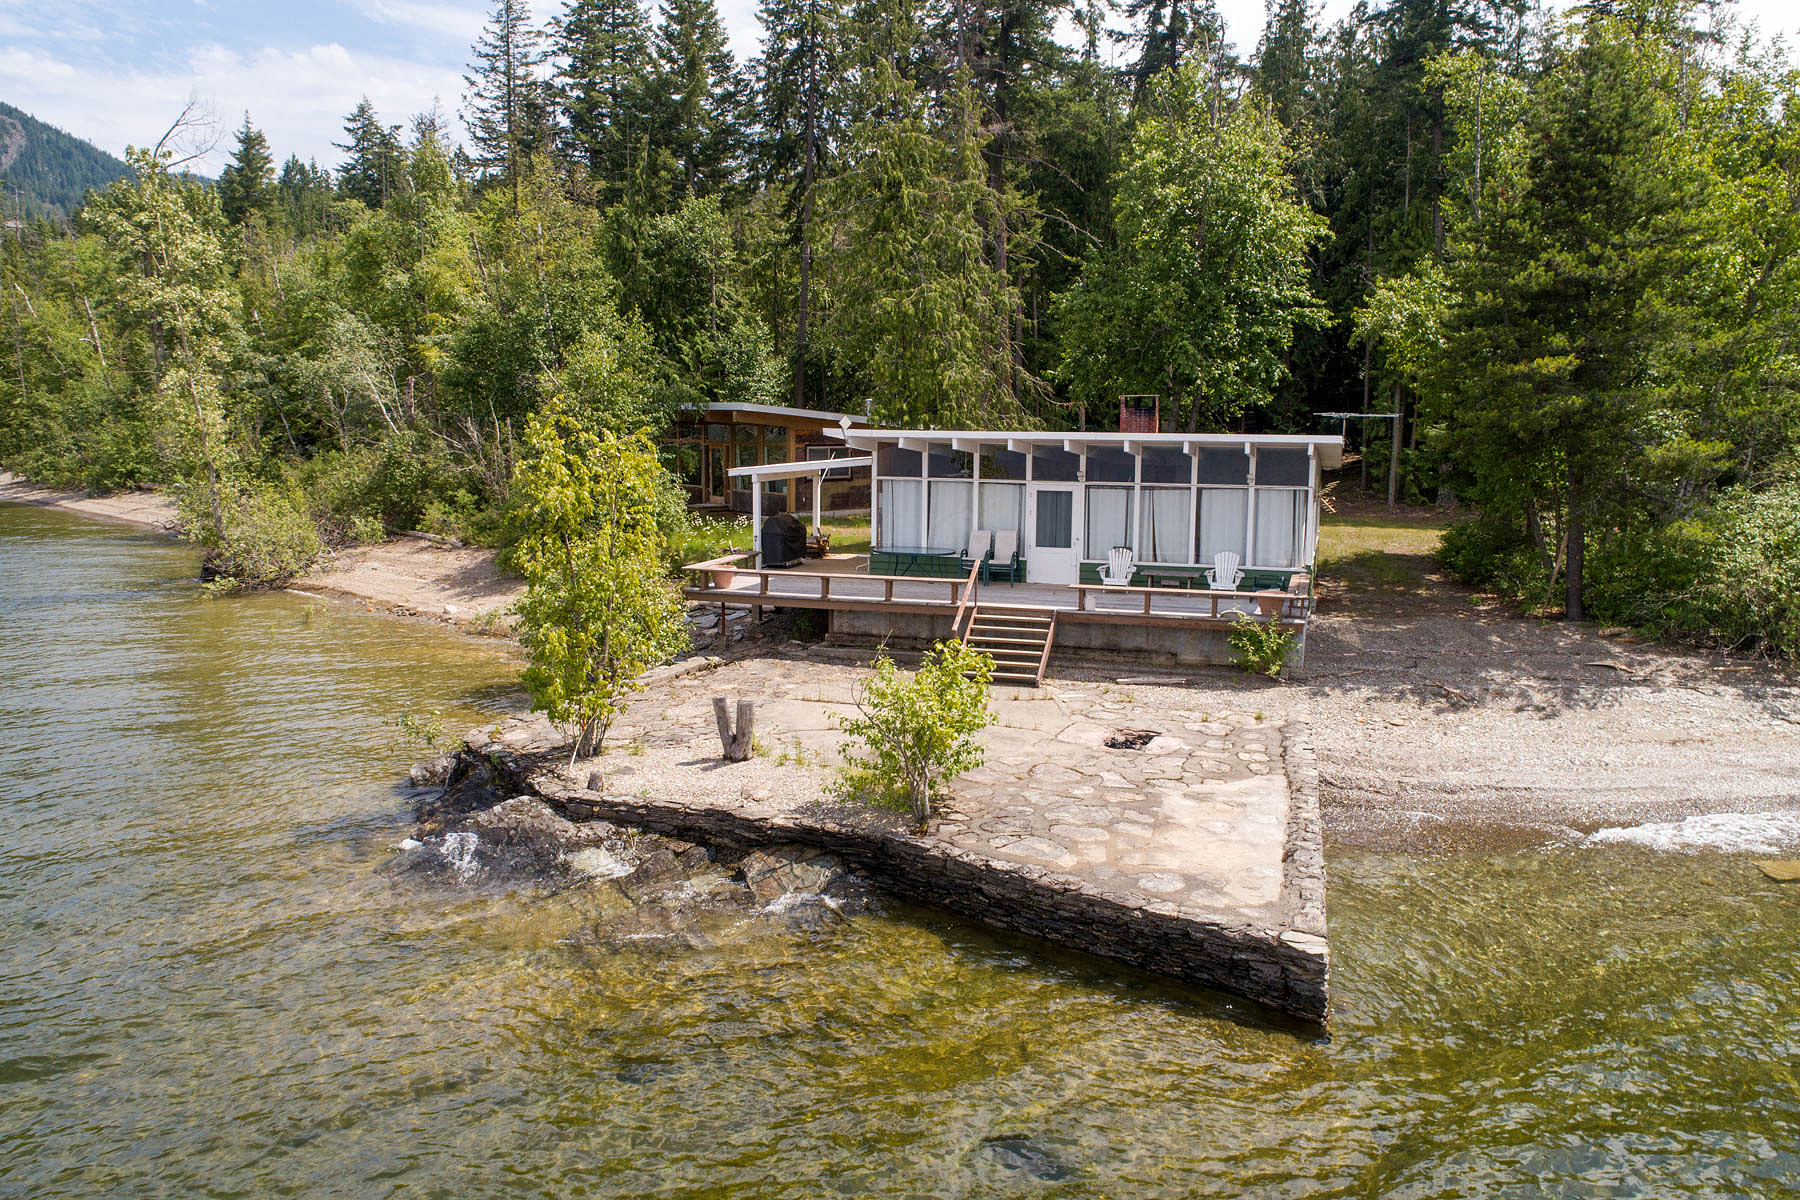 Single Family Homes for Sale at Rocky Point Road Retreat 2403 Rocky Point Road Blind Bay Blind Bay, British Columbia V0E 1H1 Canada